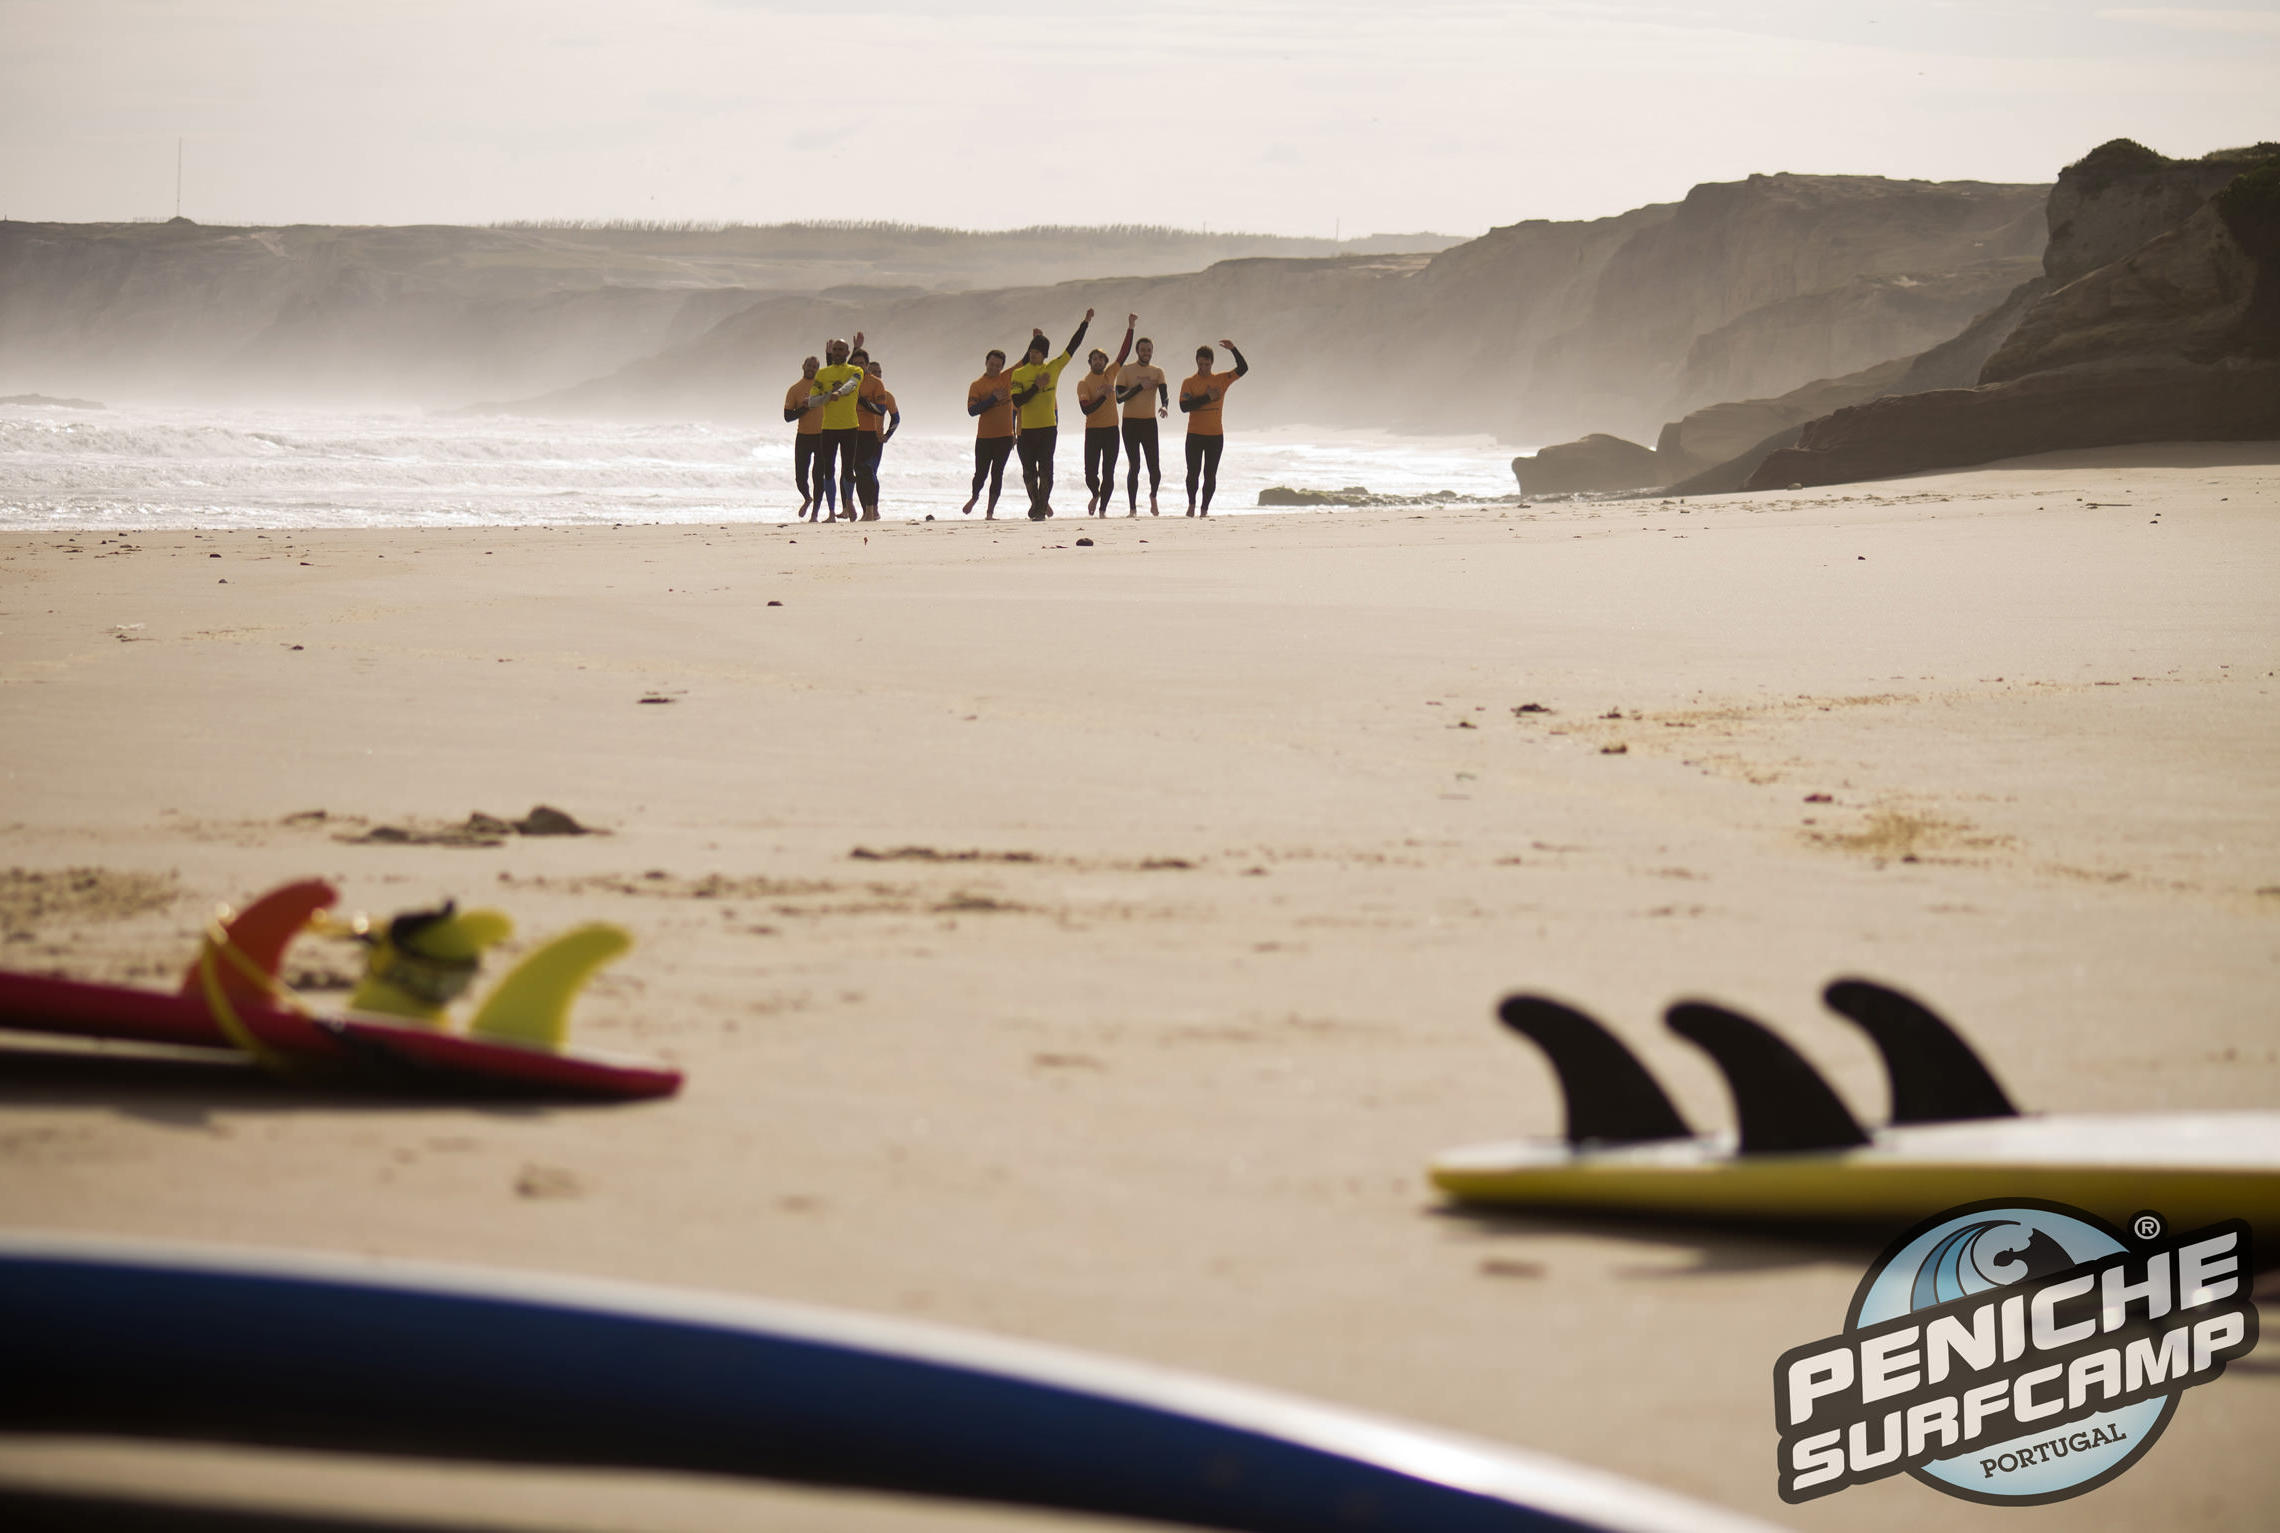 Peniche surf camp 5